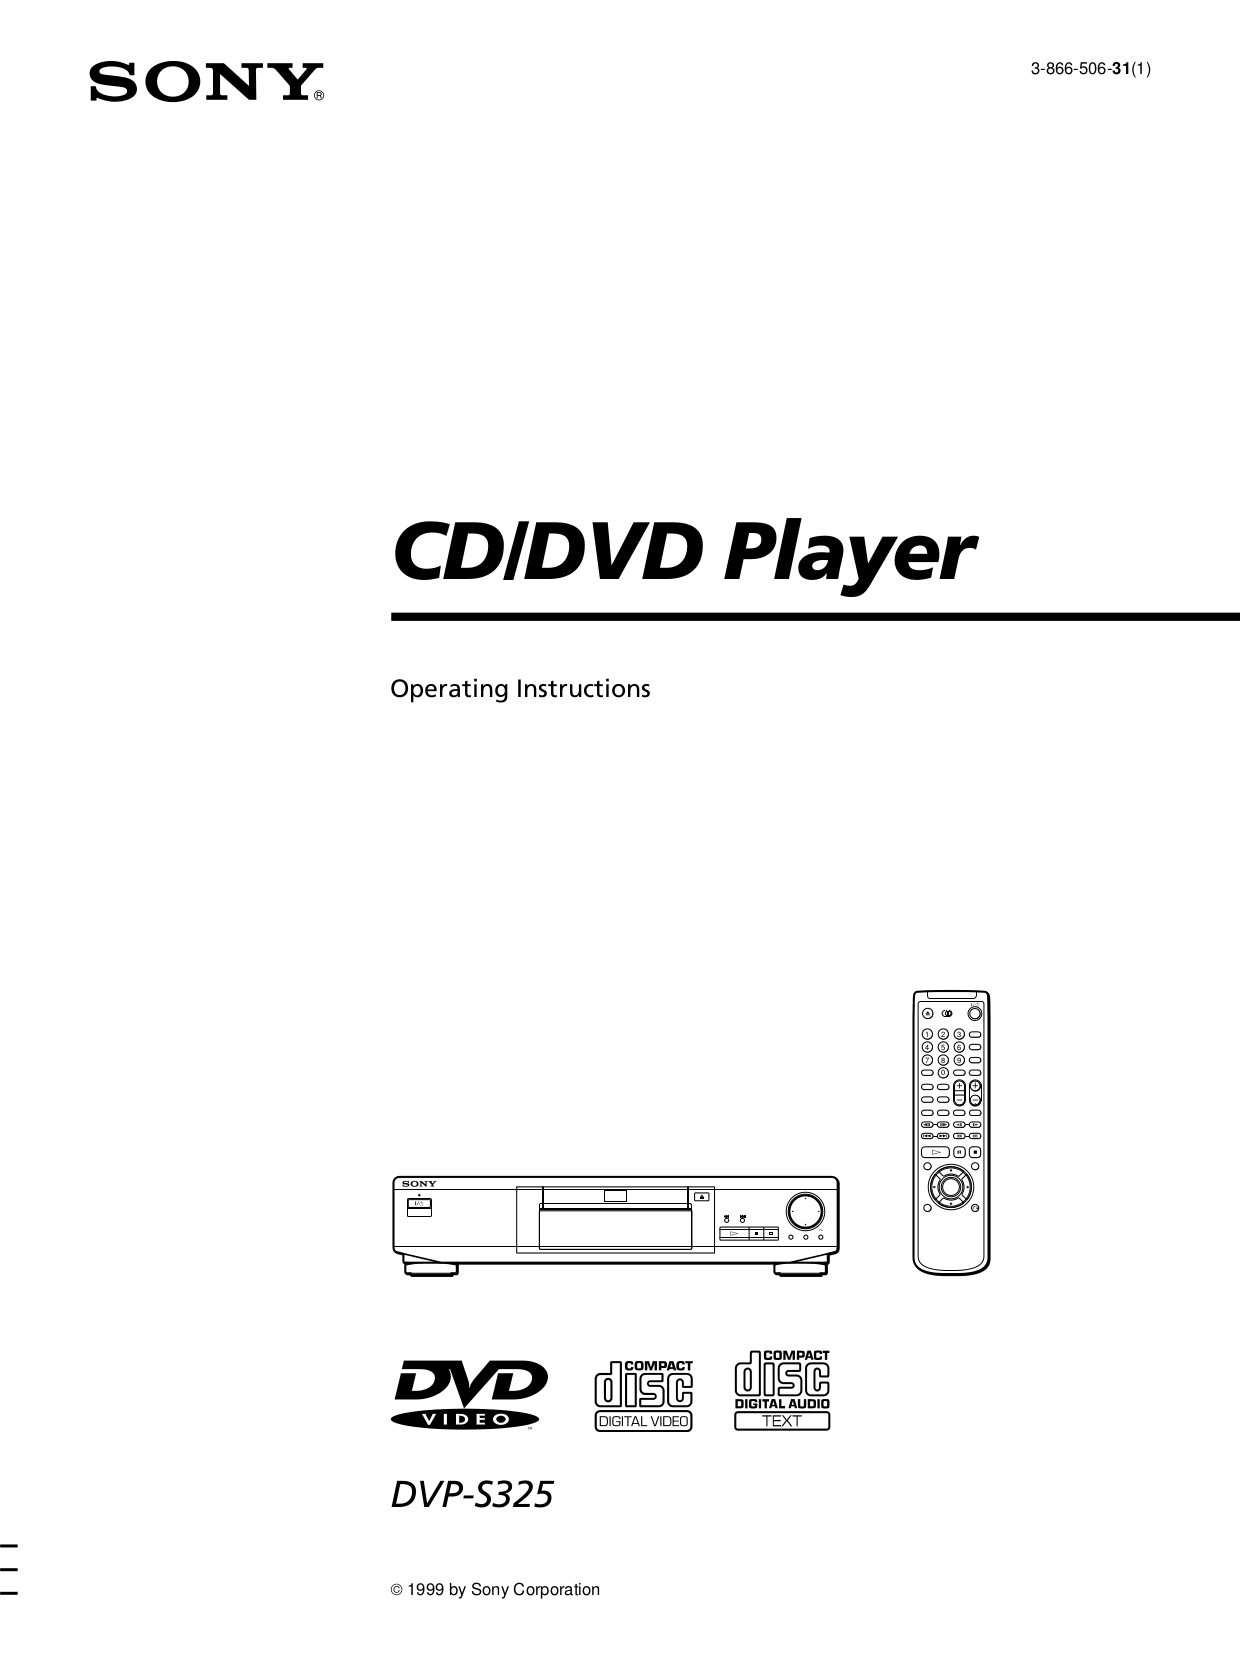 Download free pdf for Sony DVP-S325 DVD Players manual